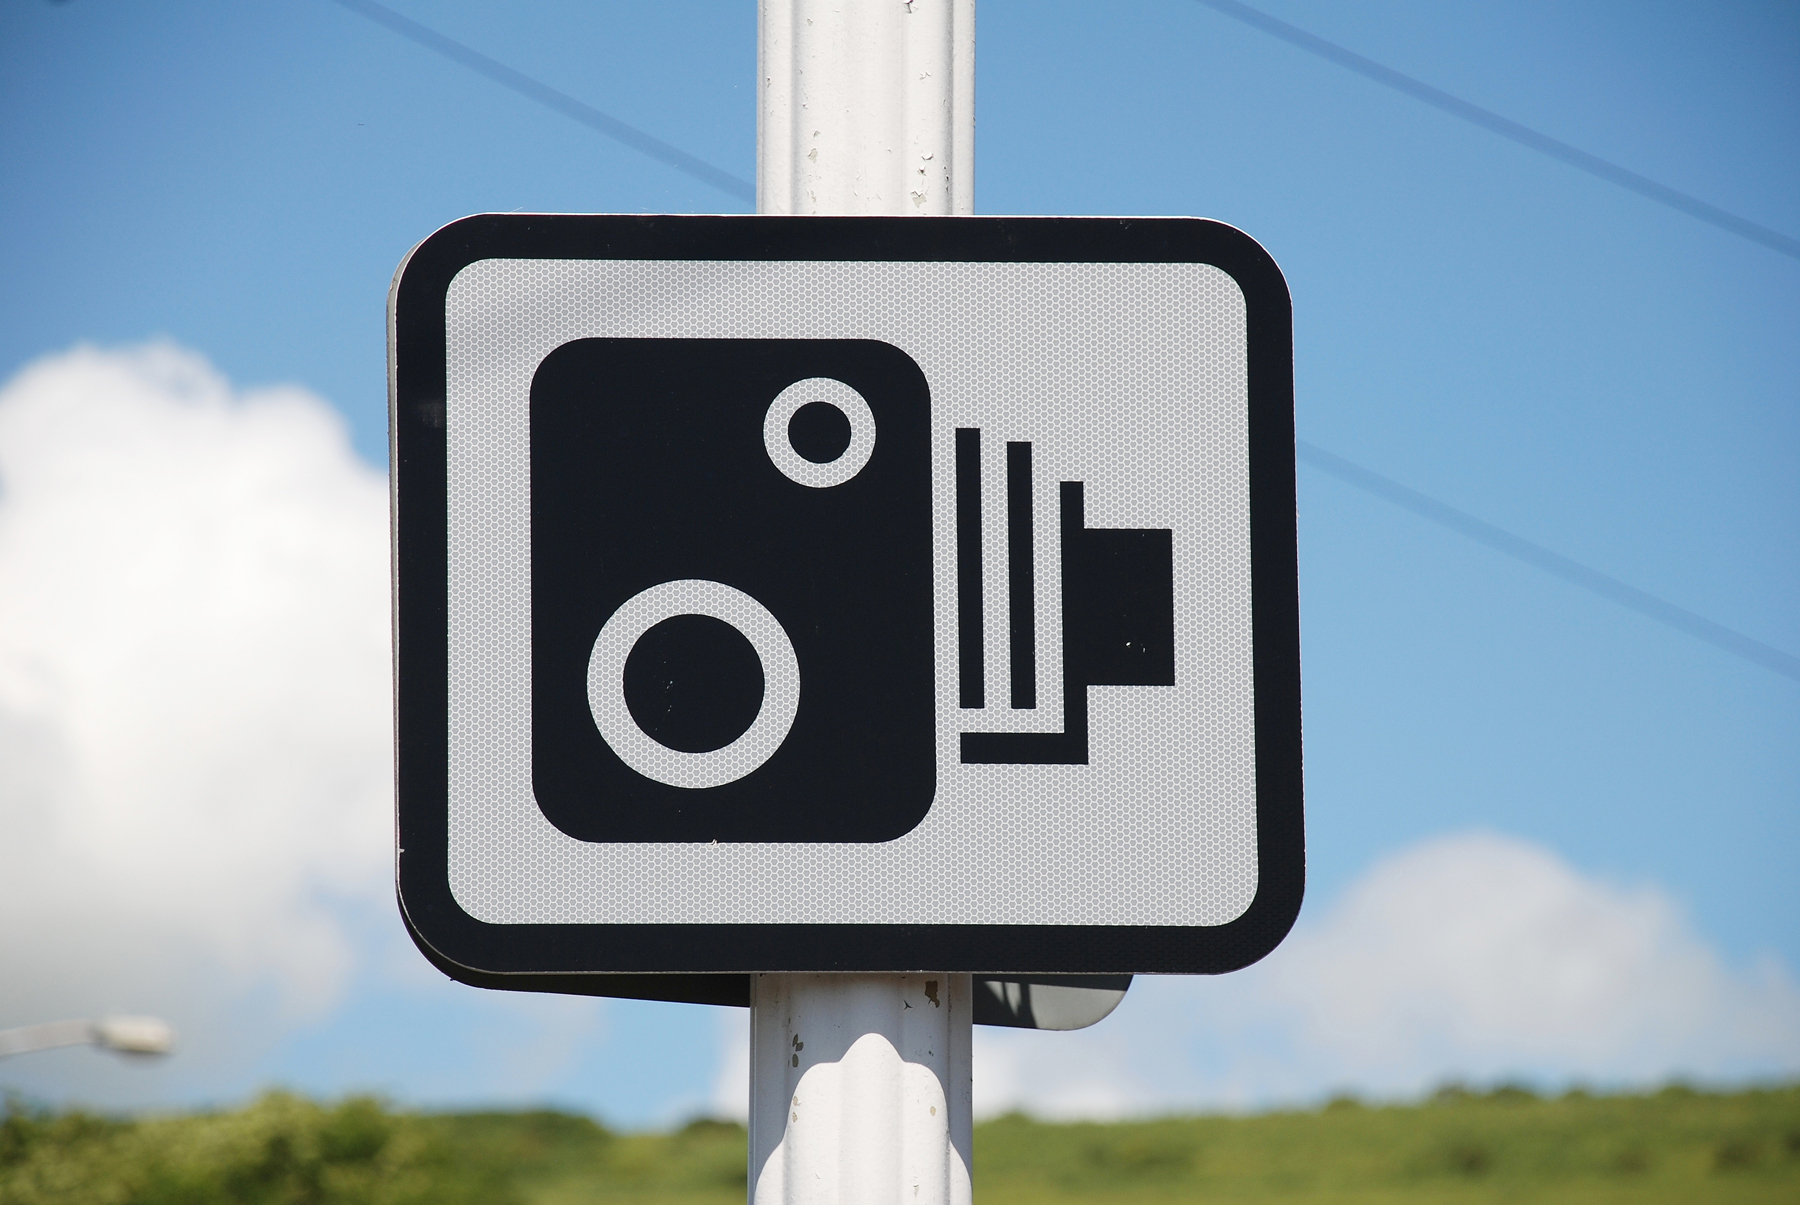 A sign next to a road depicting a speed camera